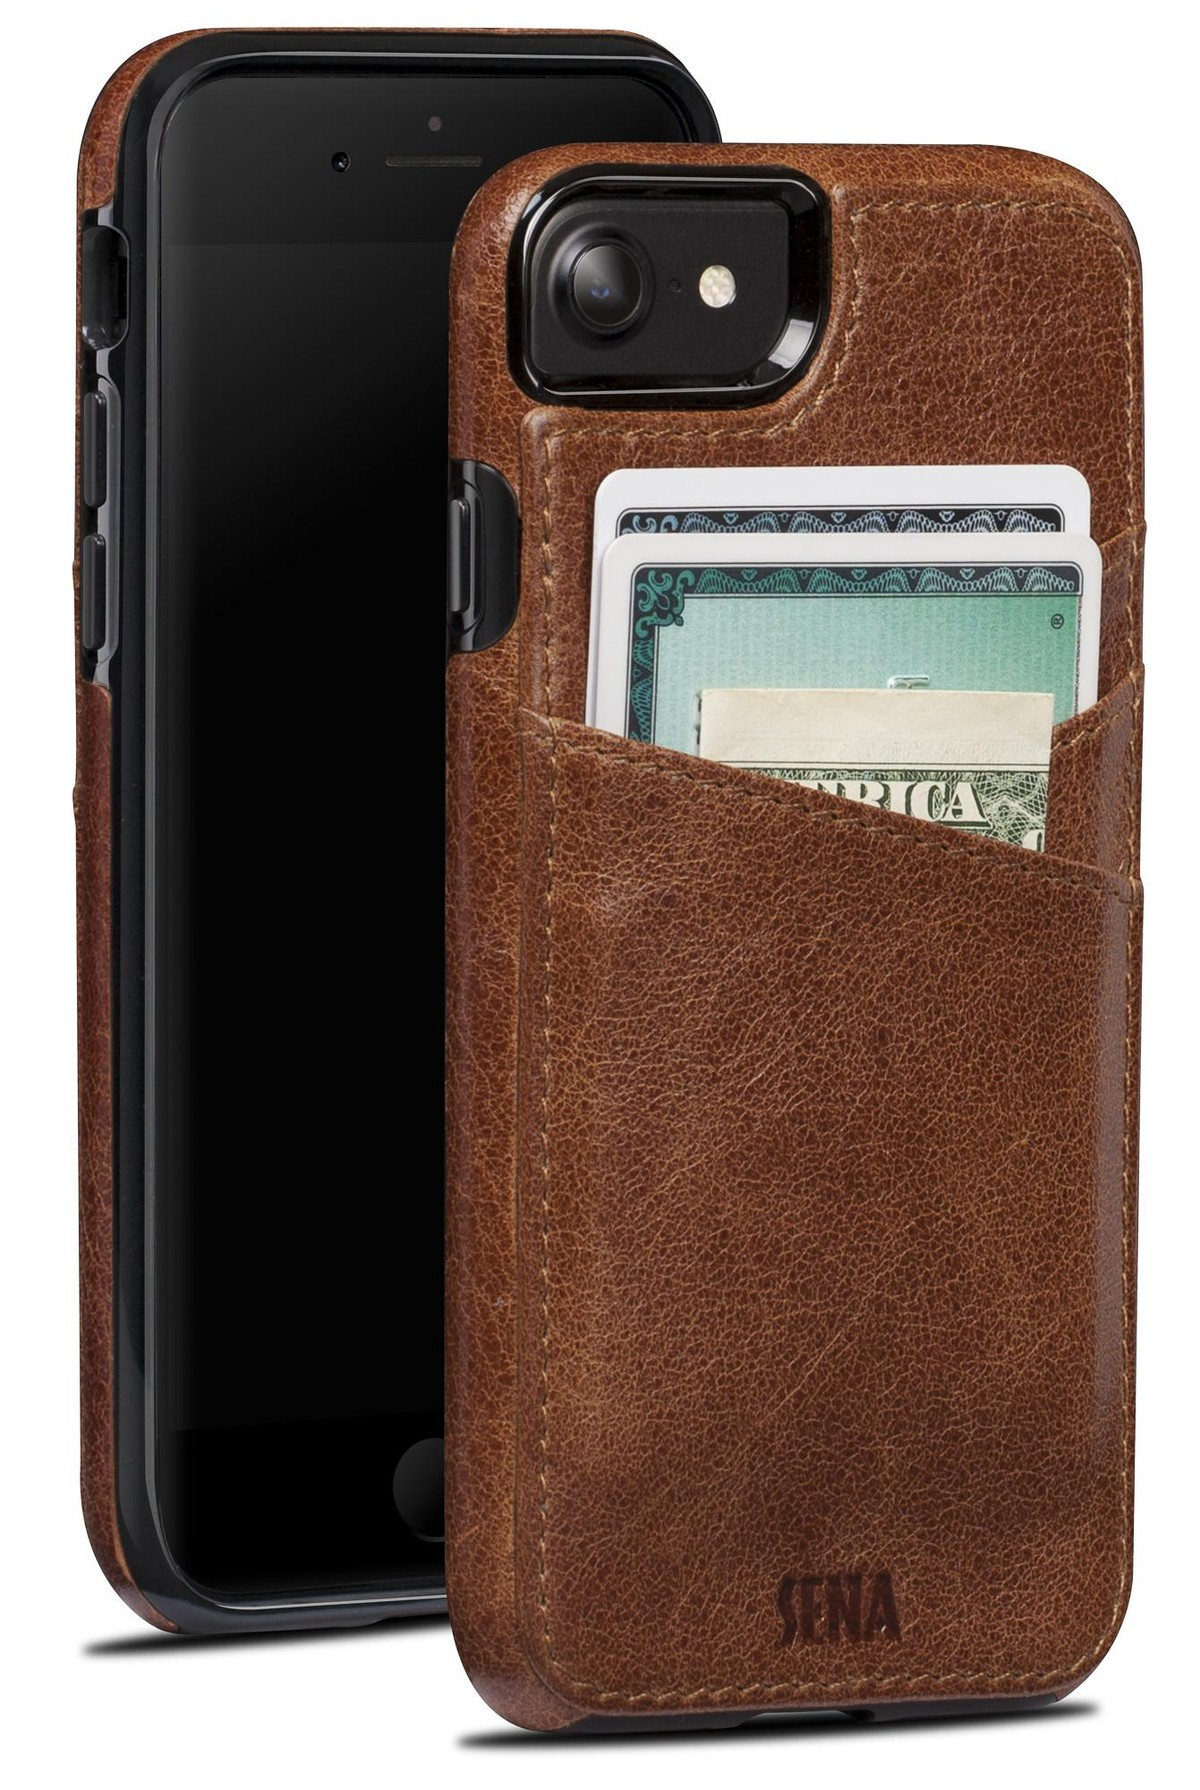 Sena Lugano leather wallet case